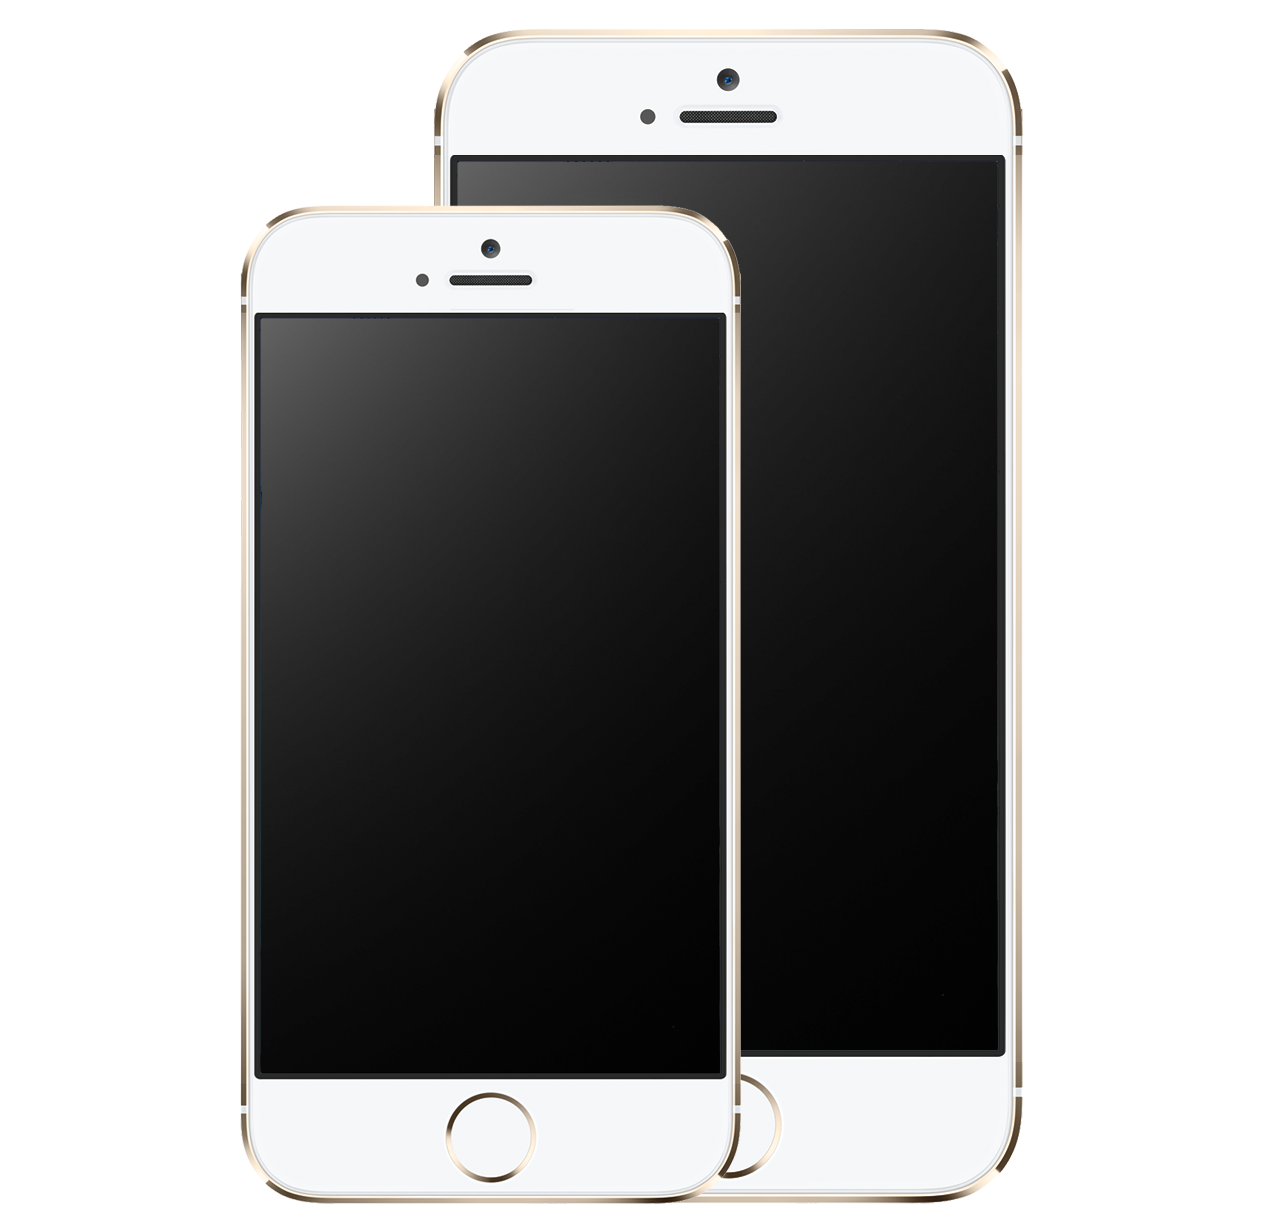 Sell Your iPhone or Samsung Phone. - Iphone PNG Black And White